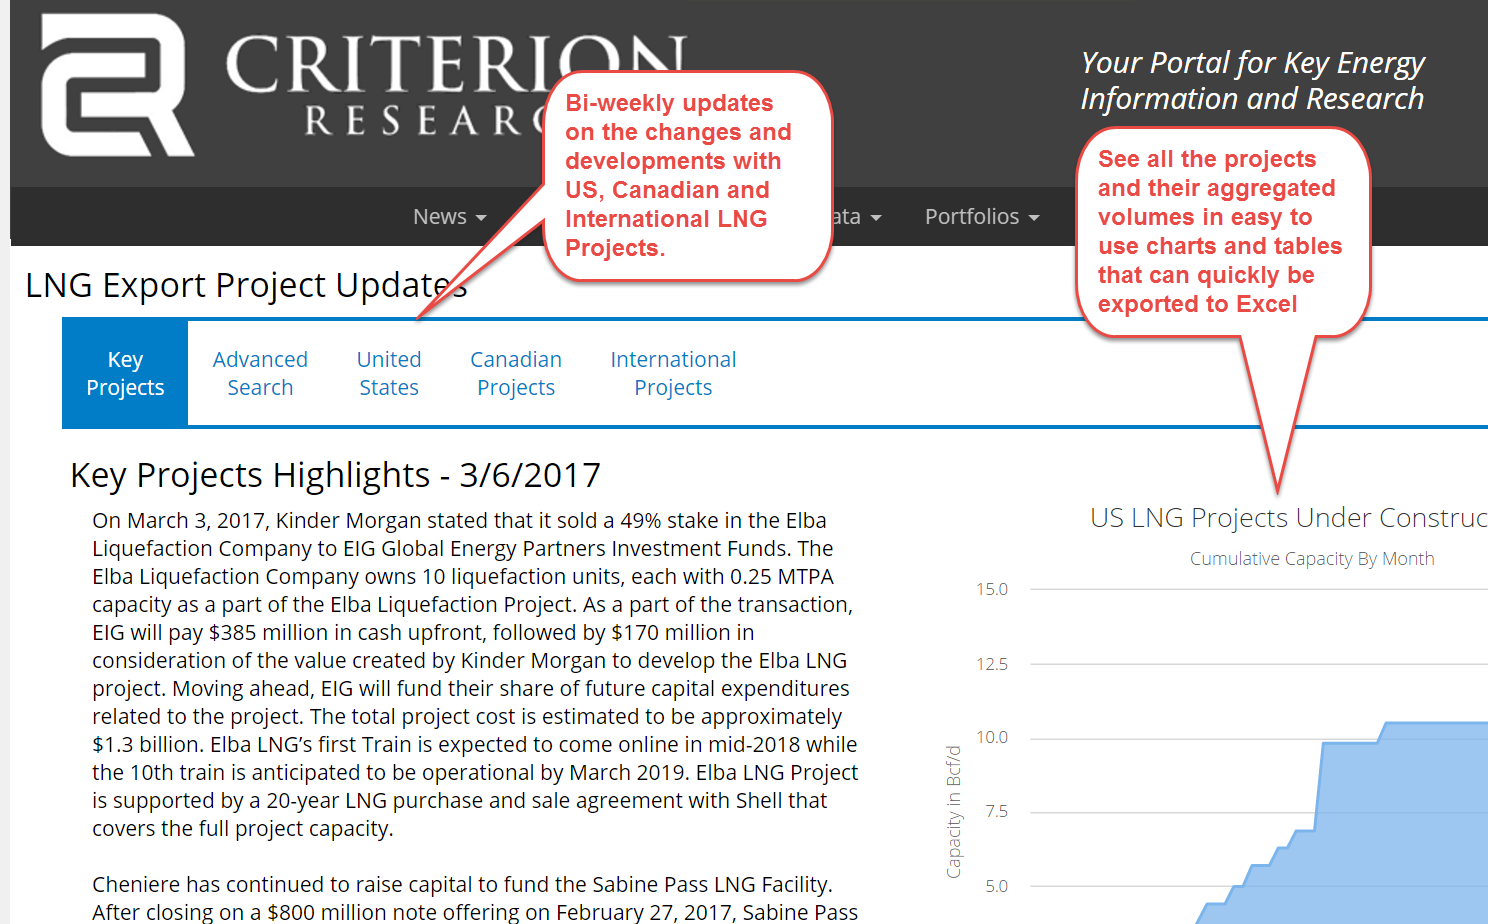 Criterion's LNG Analysis.  Key information, easily accessible.